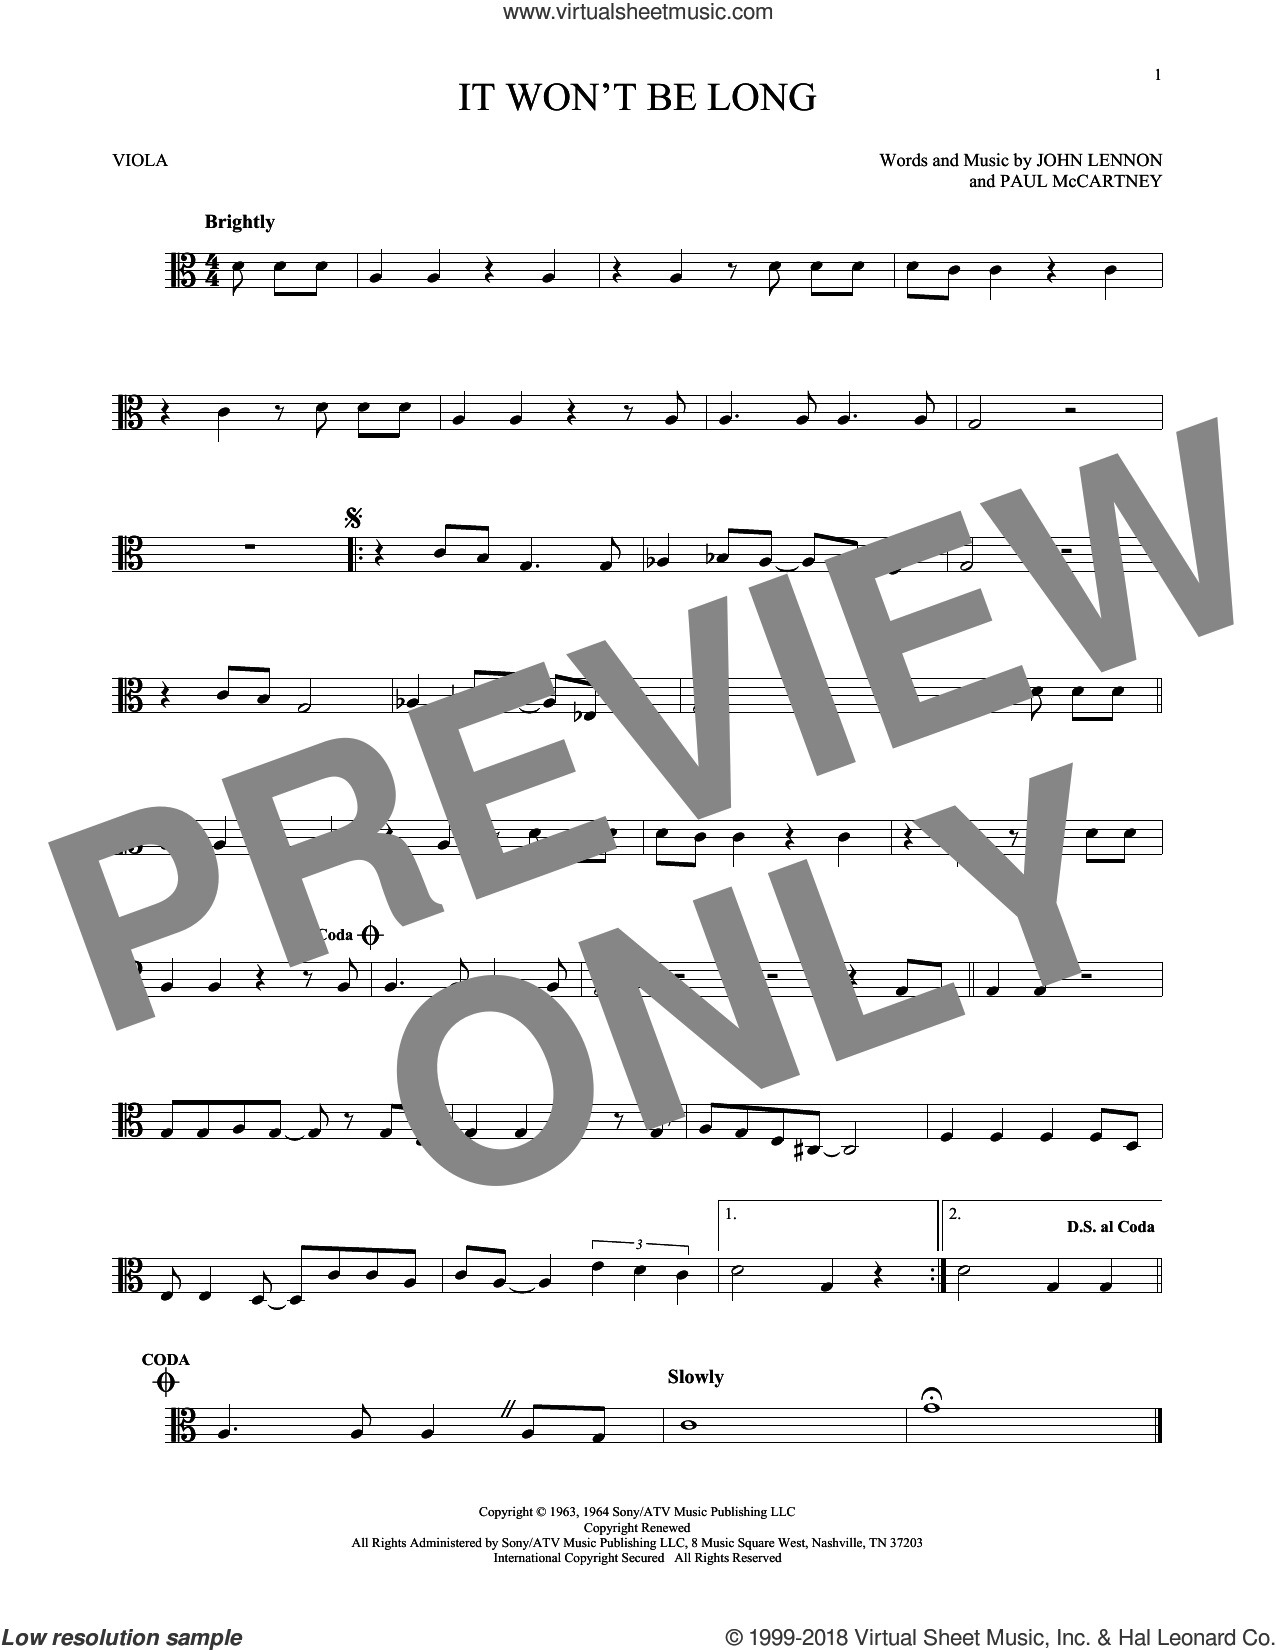 It Won't Be Long sheet music for viola solo by Paul McCartney, The Beatles and John Lennon. Score Image Preview.